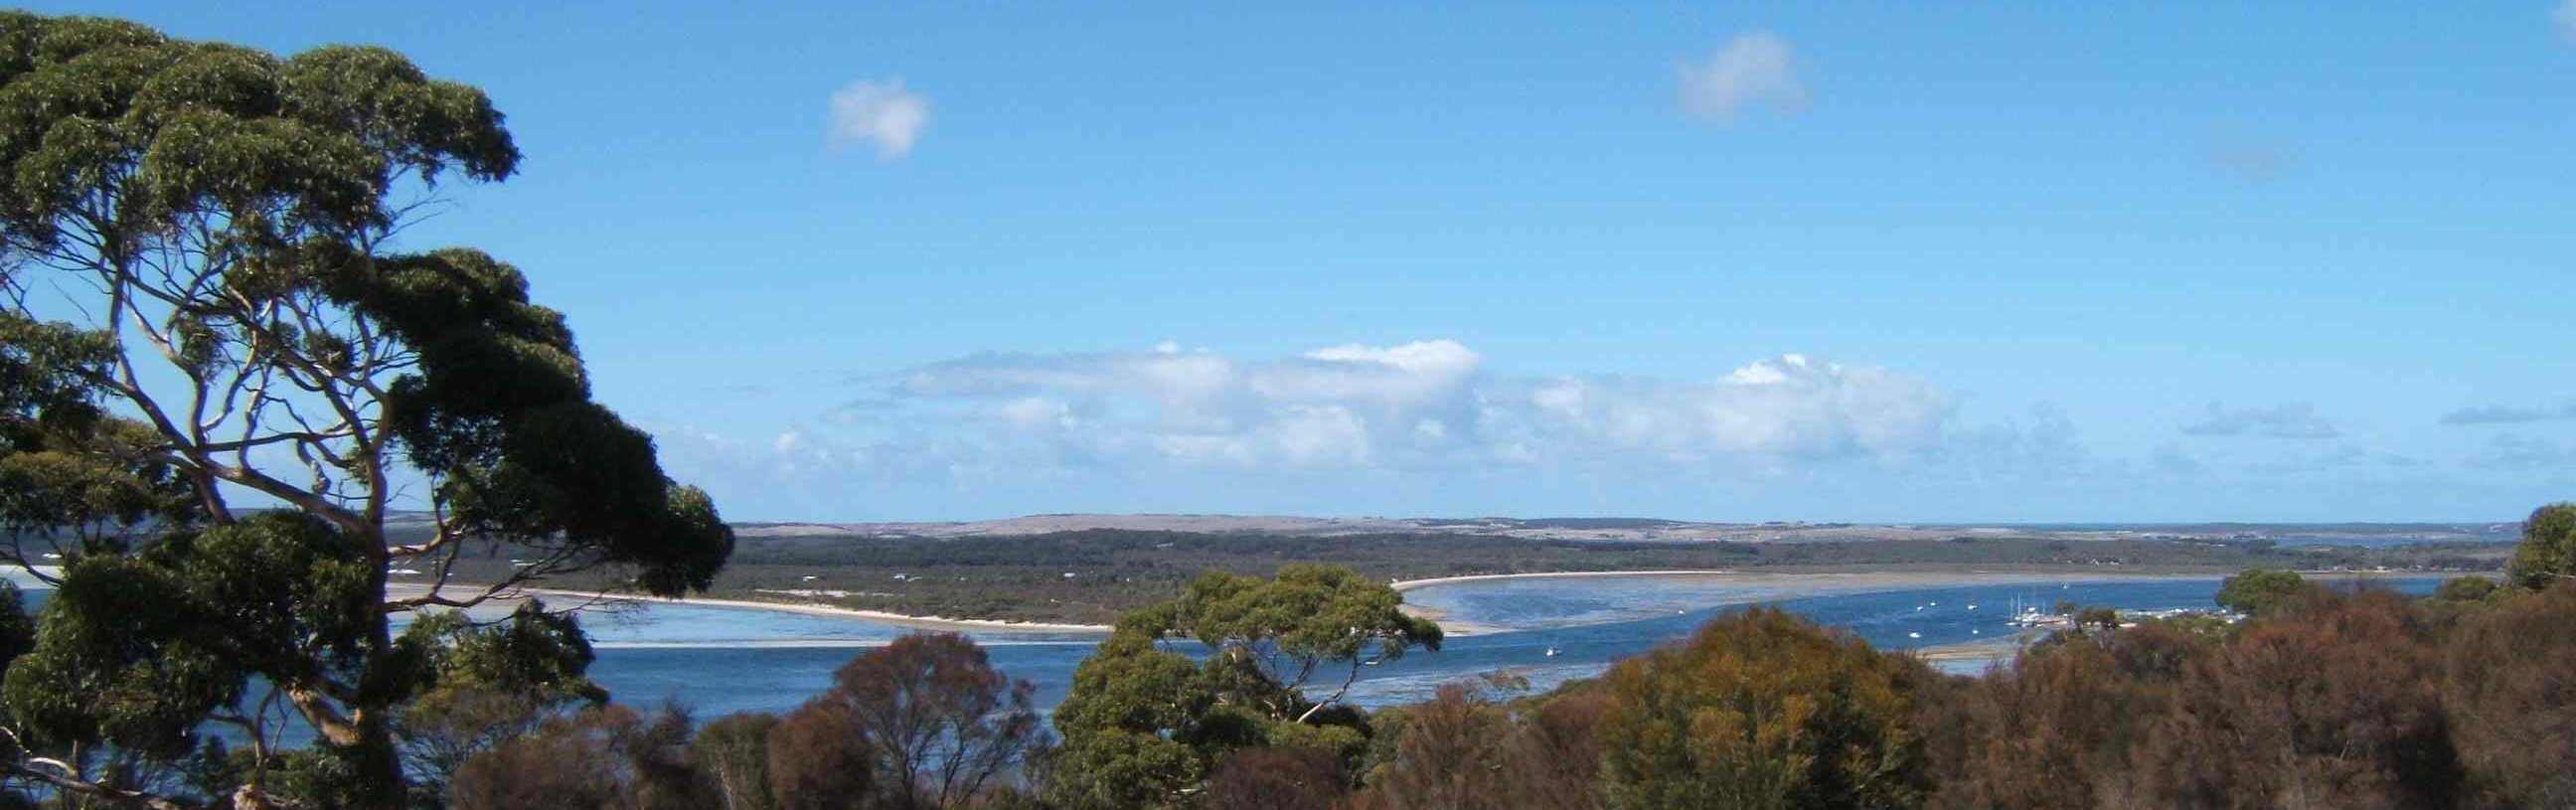 view from À bientôt Seayu Lodge, Kangaroo Island